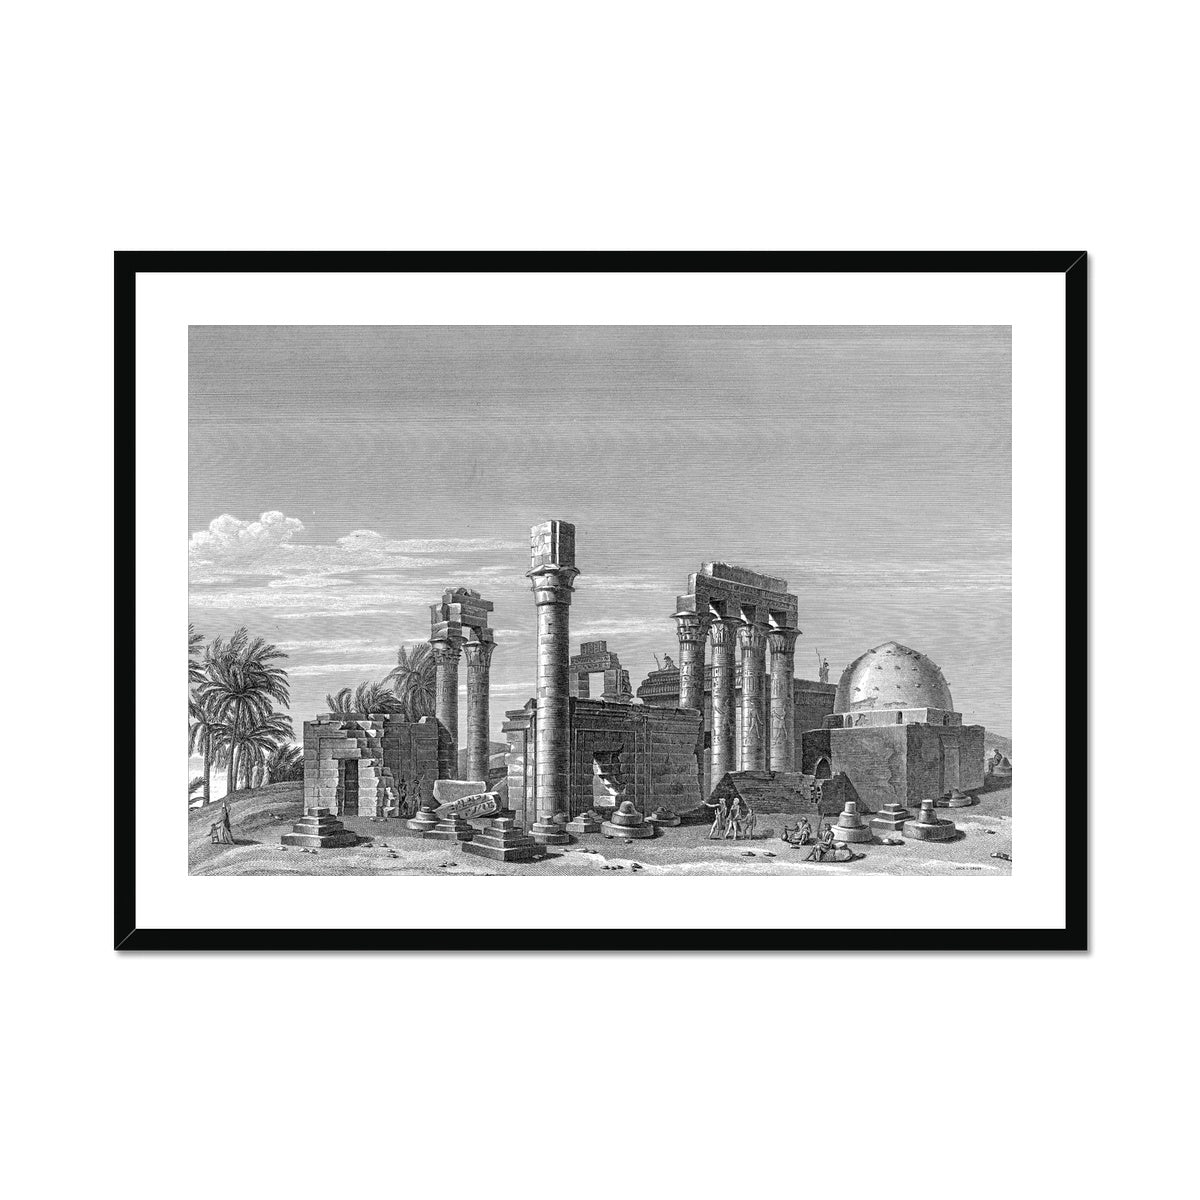 The Temple of Hermonthis Ruins 3 - Armant Egypt -  Framed & Mounted Print